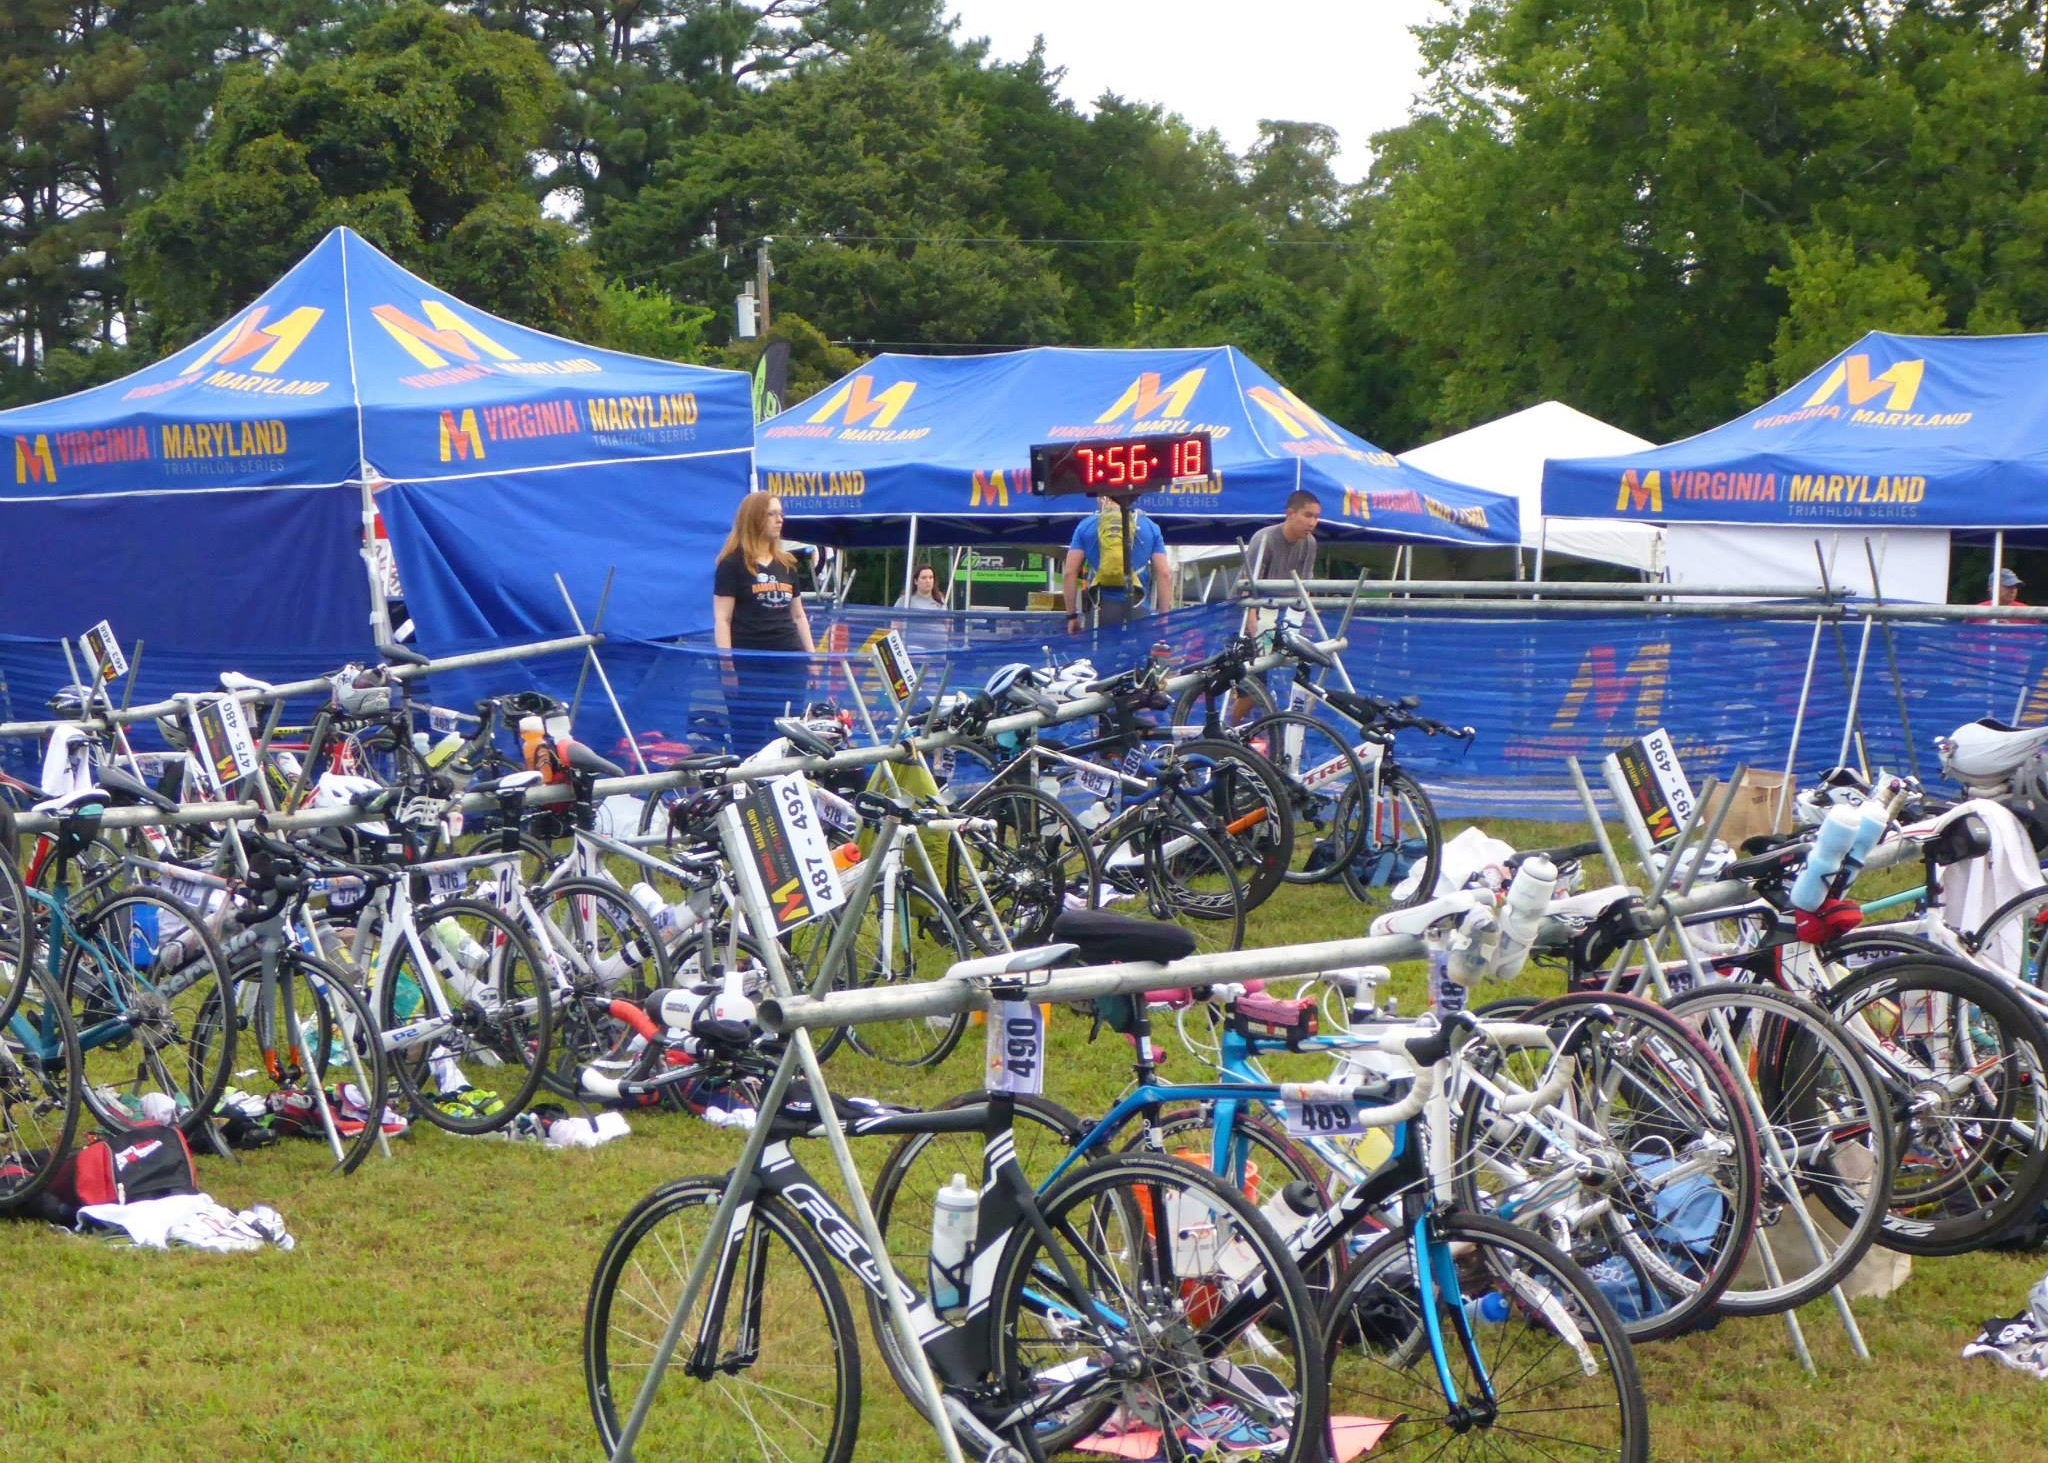 Photo from Virginia Maryland Triathlon Series